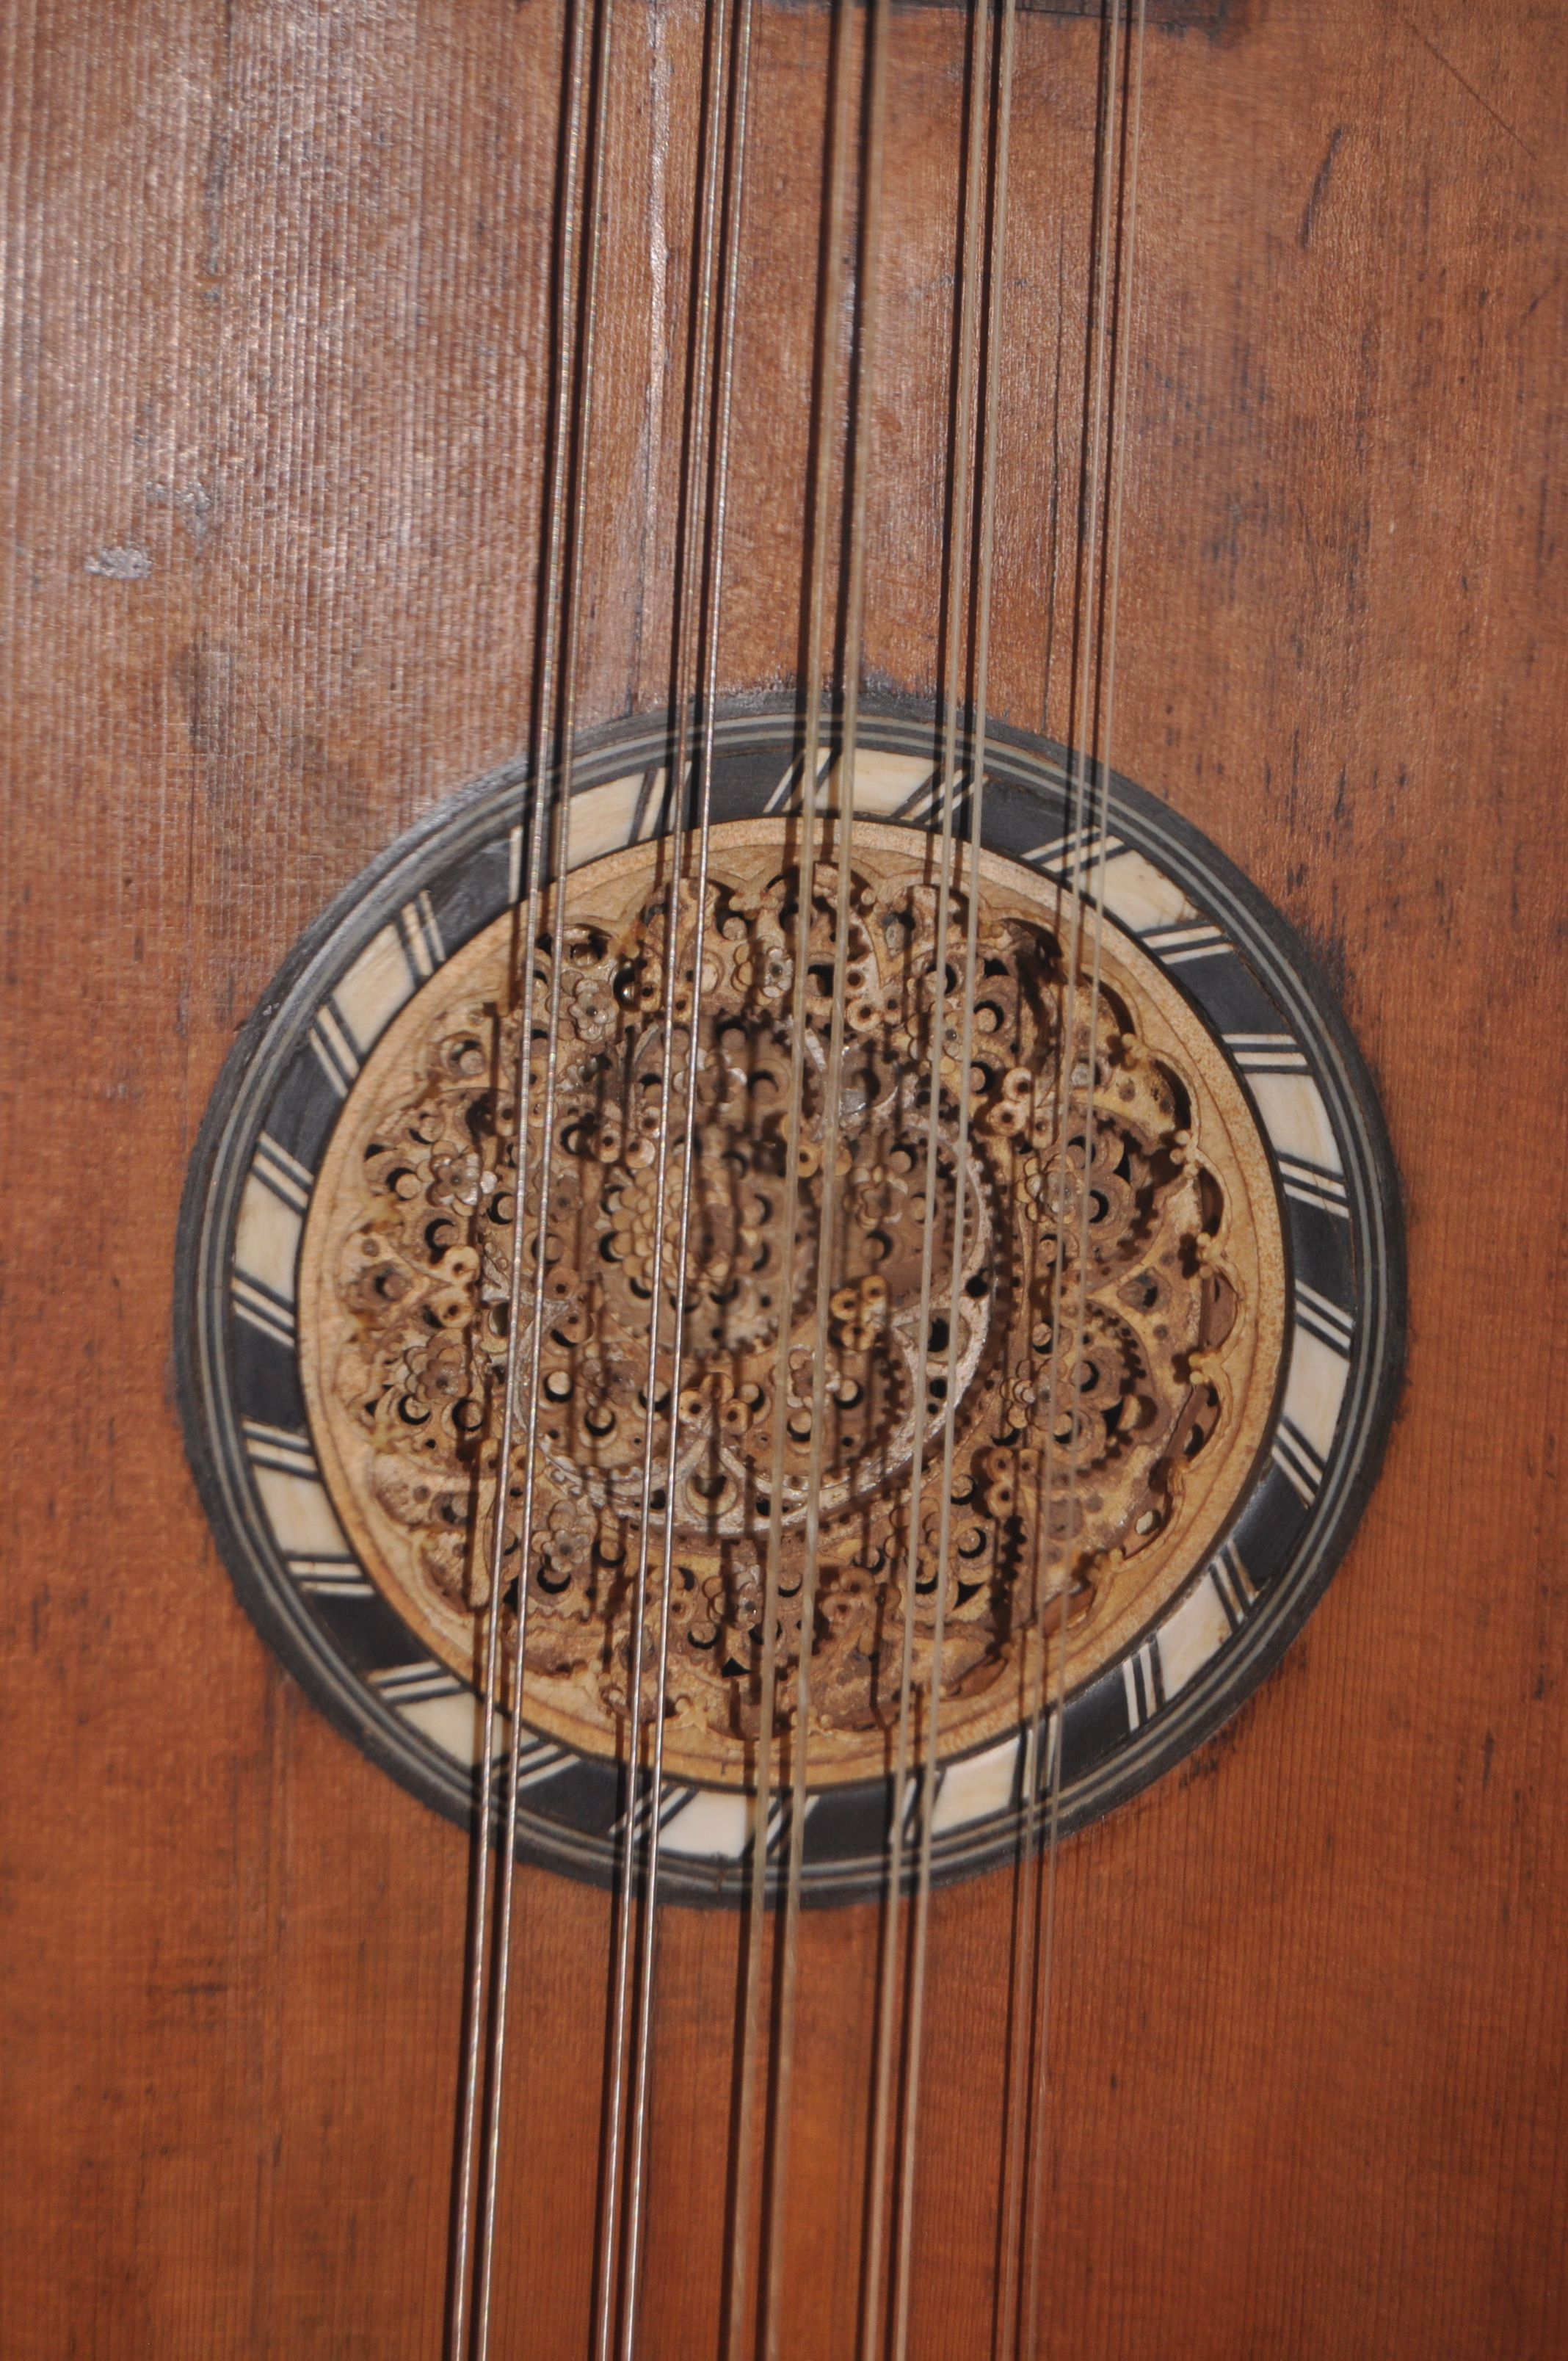 Baroque guitar rose music lute strings tablatures 1640 guitar photo by linda britt lutemusical instrumentsrosettes baroqueceiling dailygadgetfo Gallery